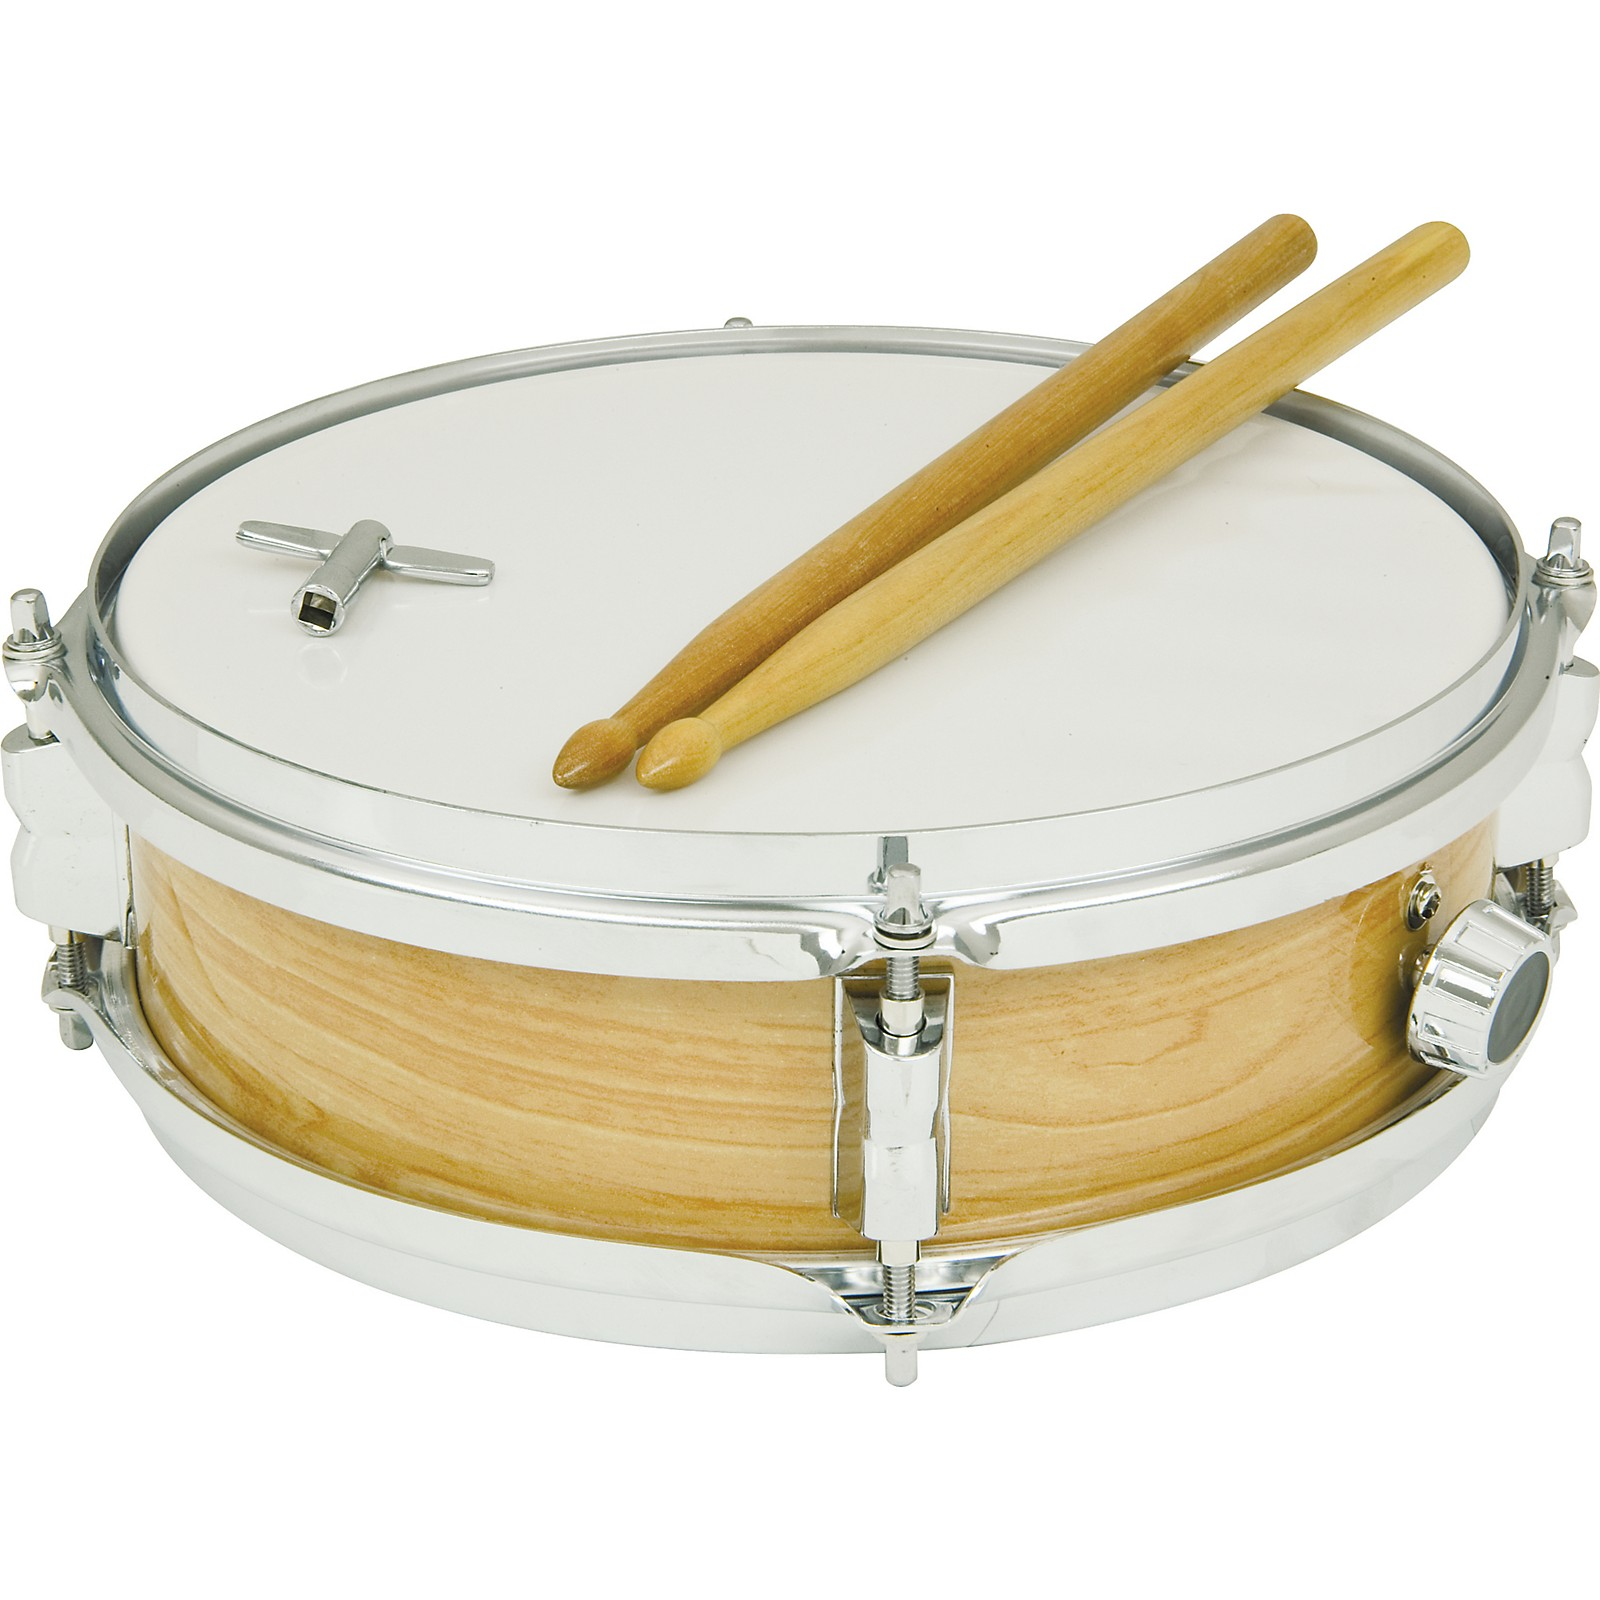 Rhythm Band RB1030 Deluxe Junior Snare Drum Outfit